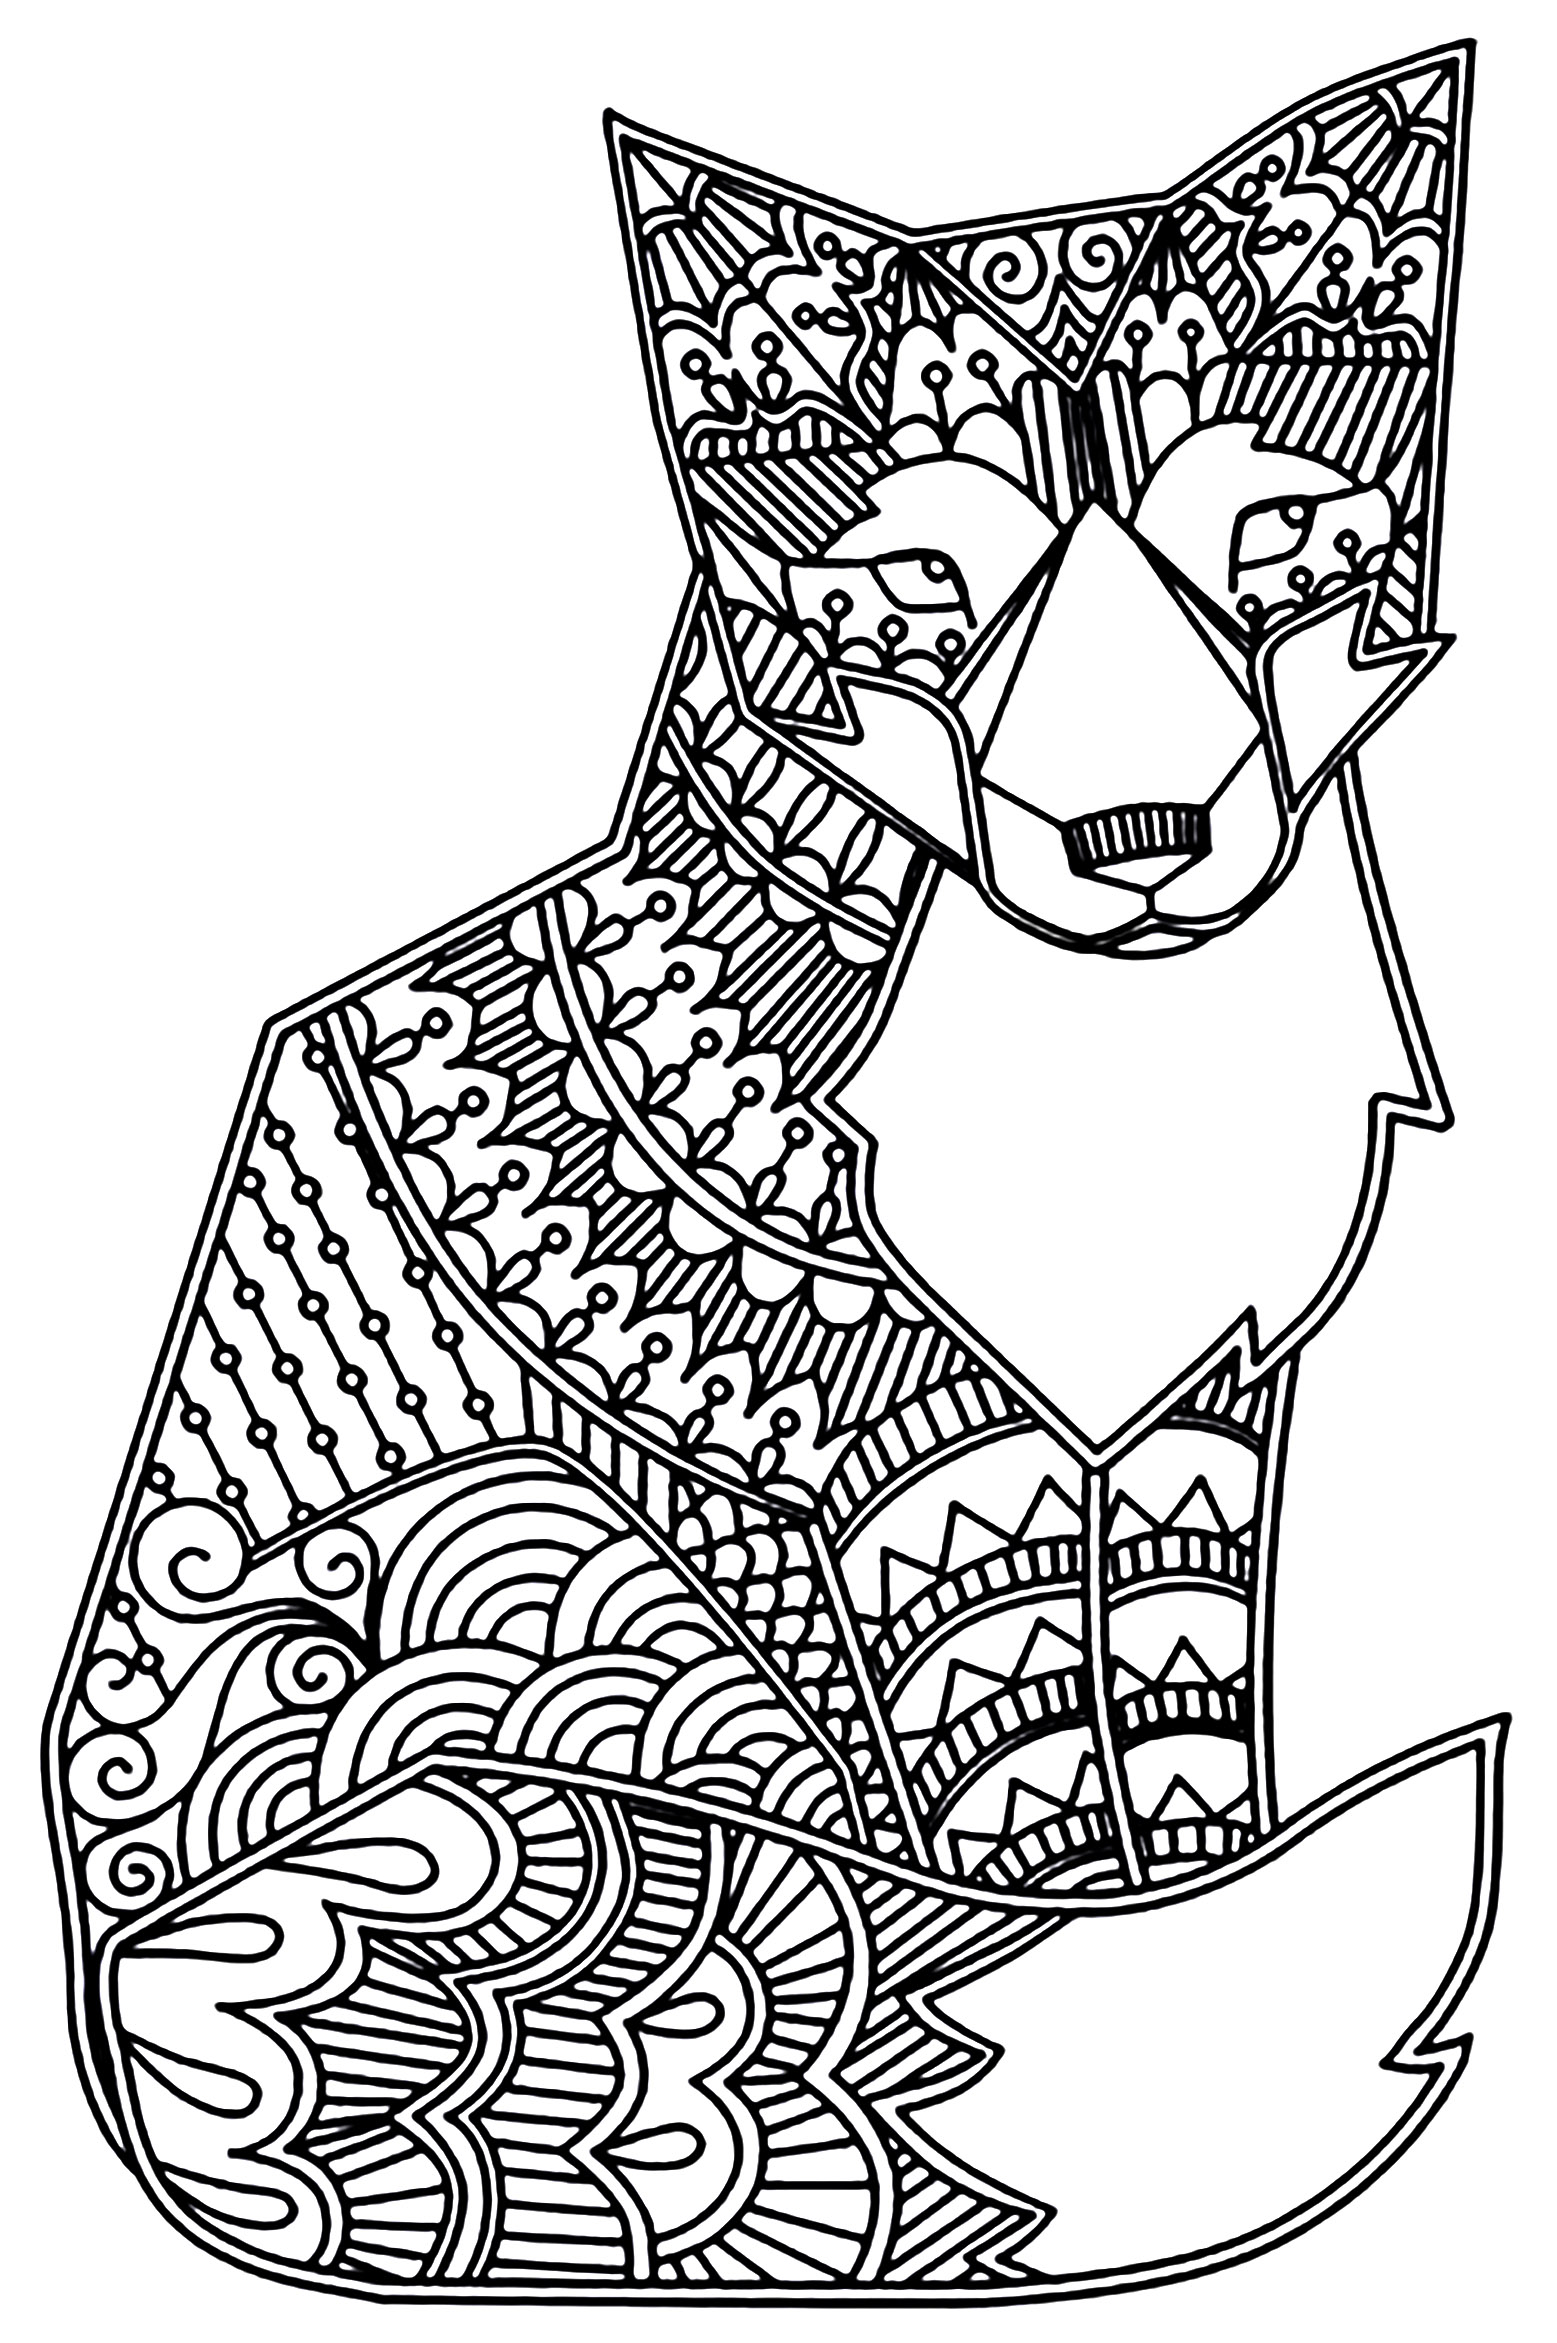 Fox Coloring Sheet : coloring, sheet, Foxes, Adult, Coloring, Pages